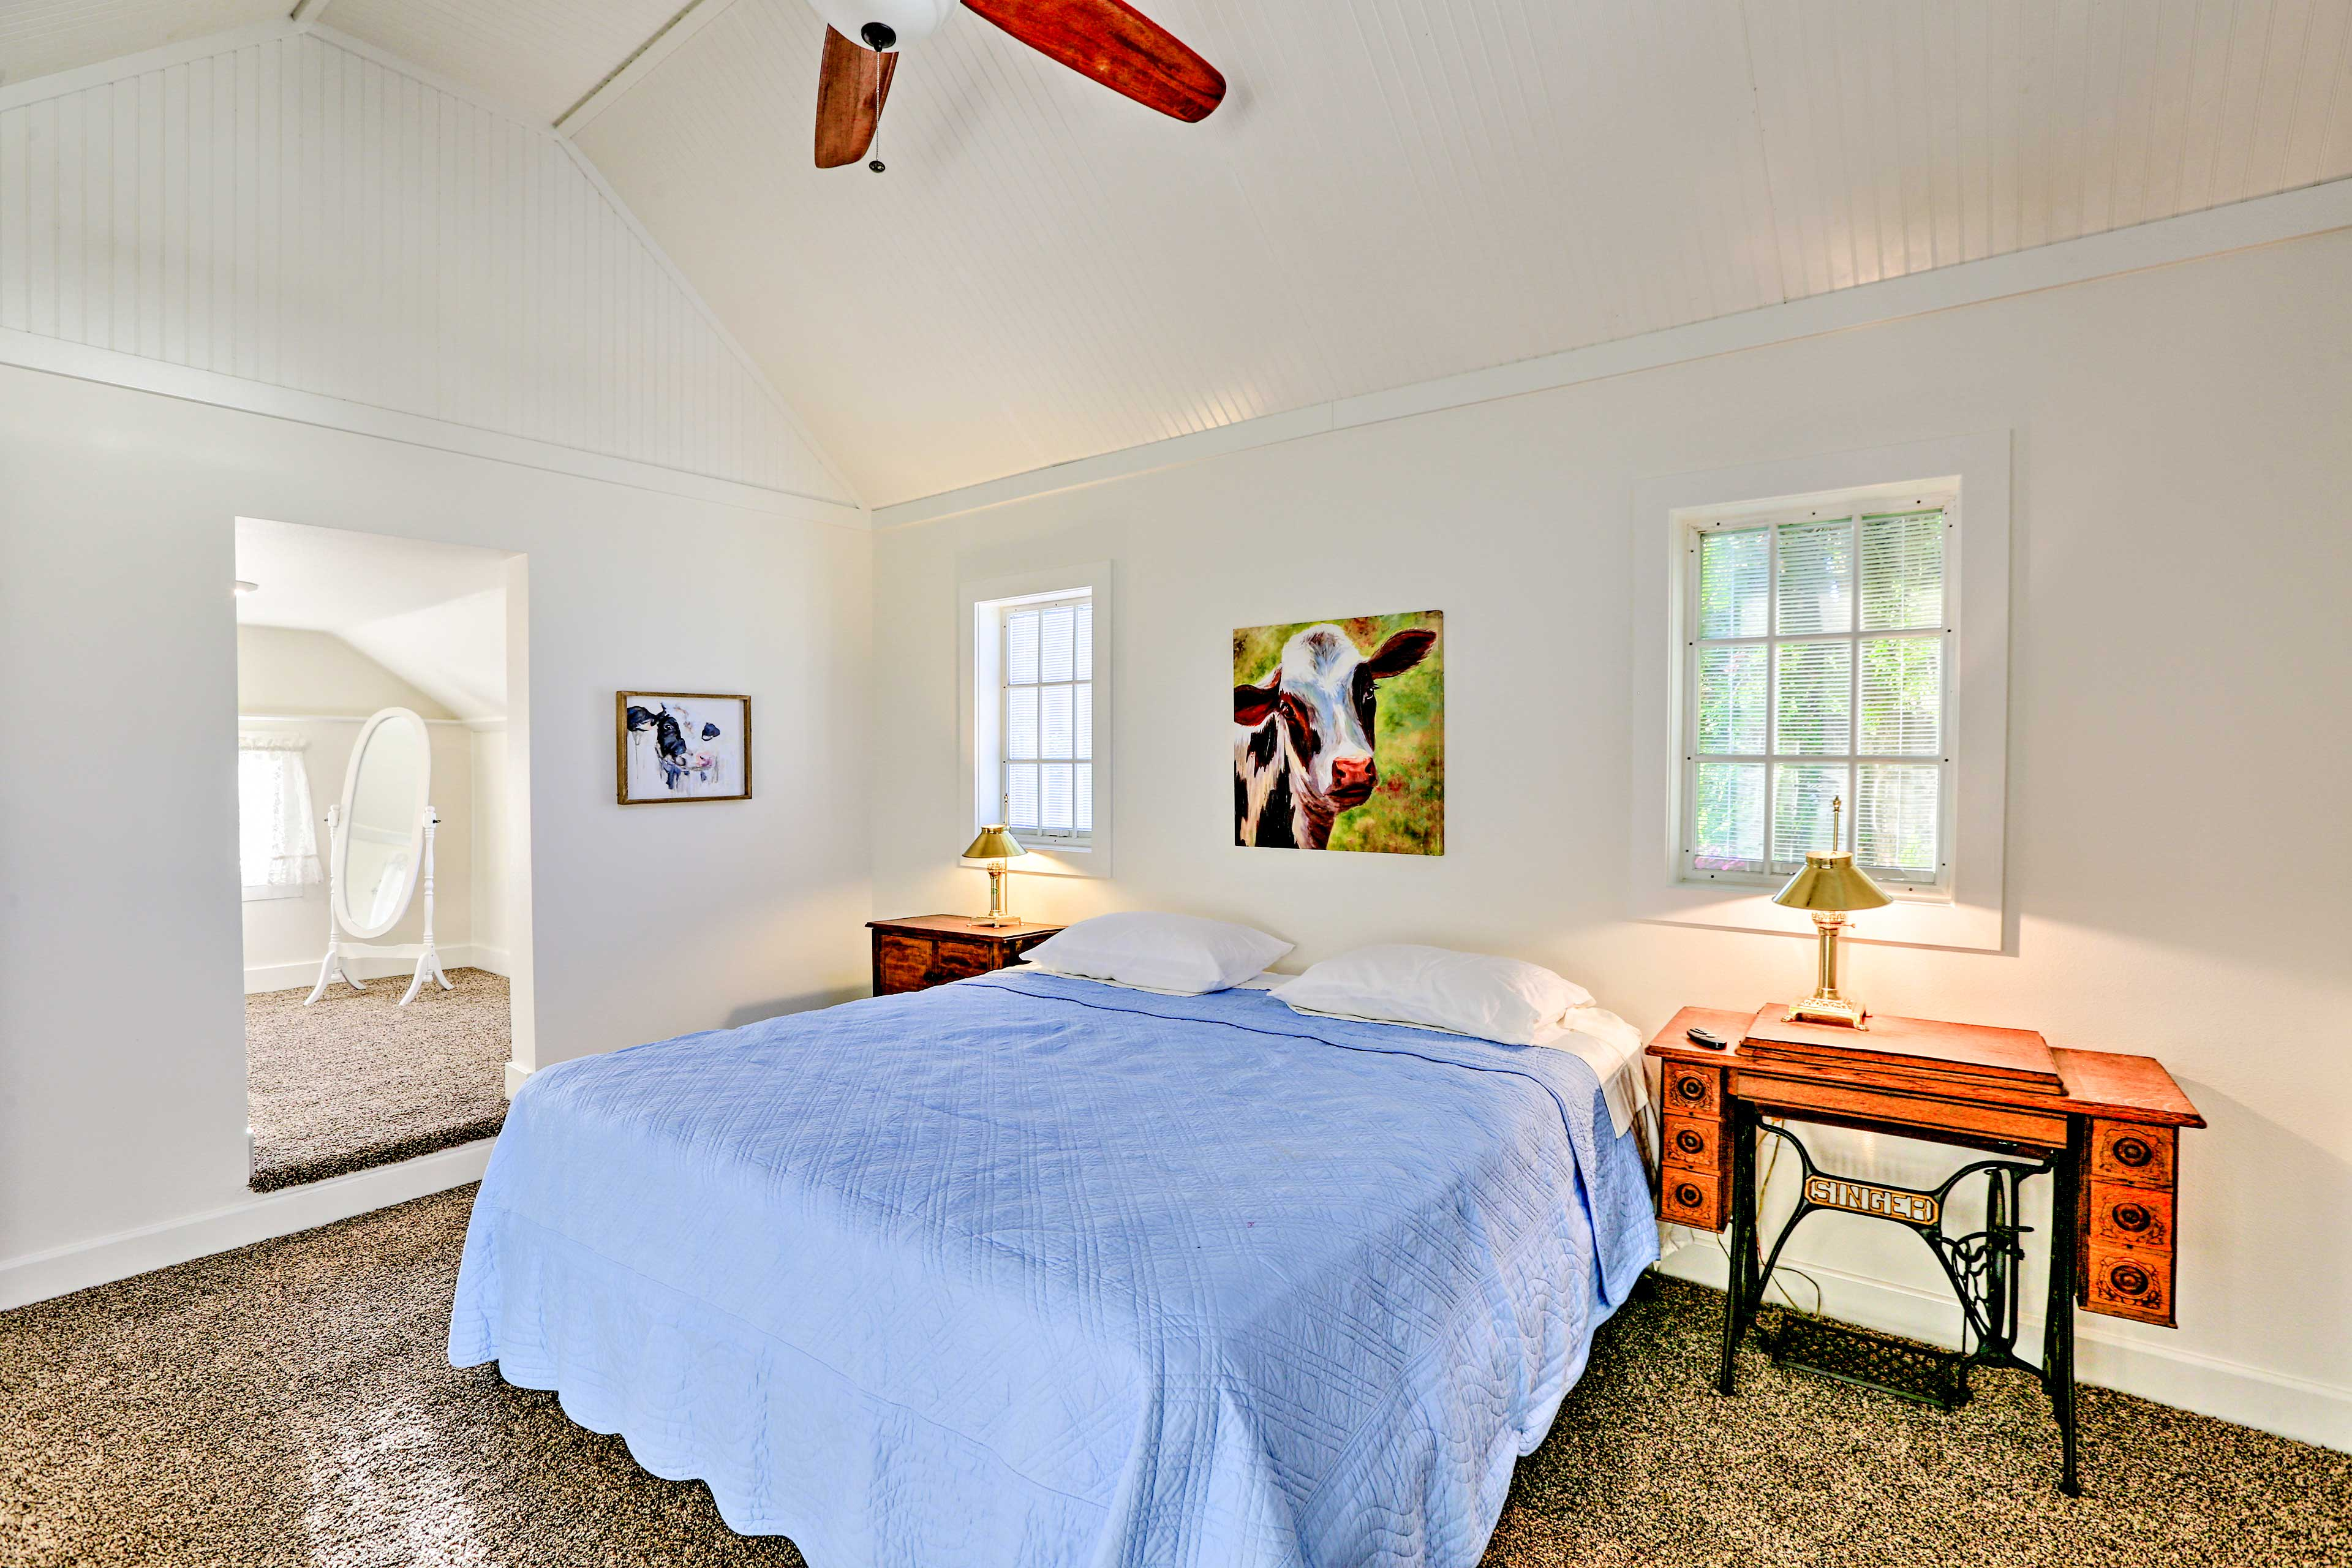 The elegant master bedroom is the perfect respite after a long day.